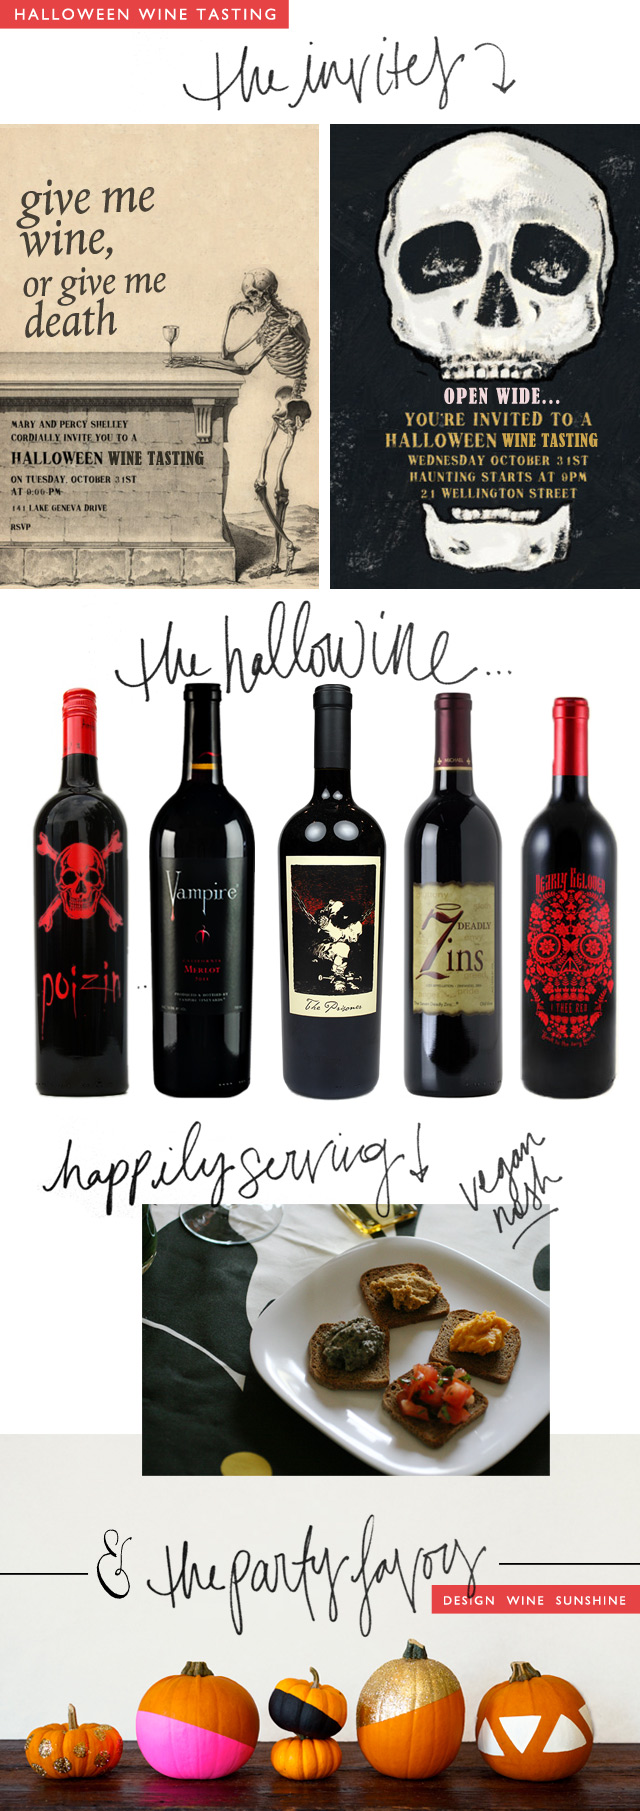 design-wine-sunshine-halloween-wine-tasting